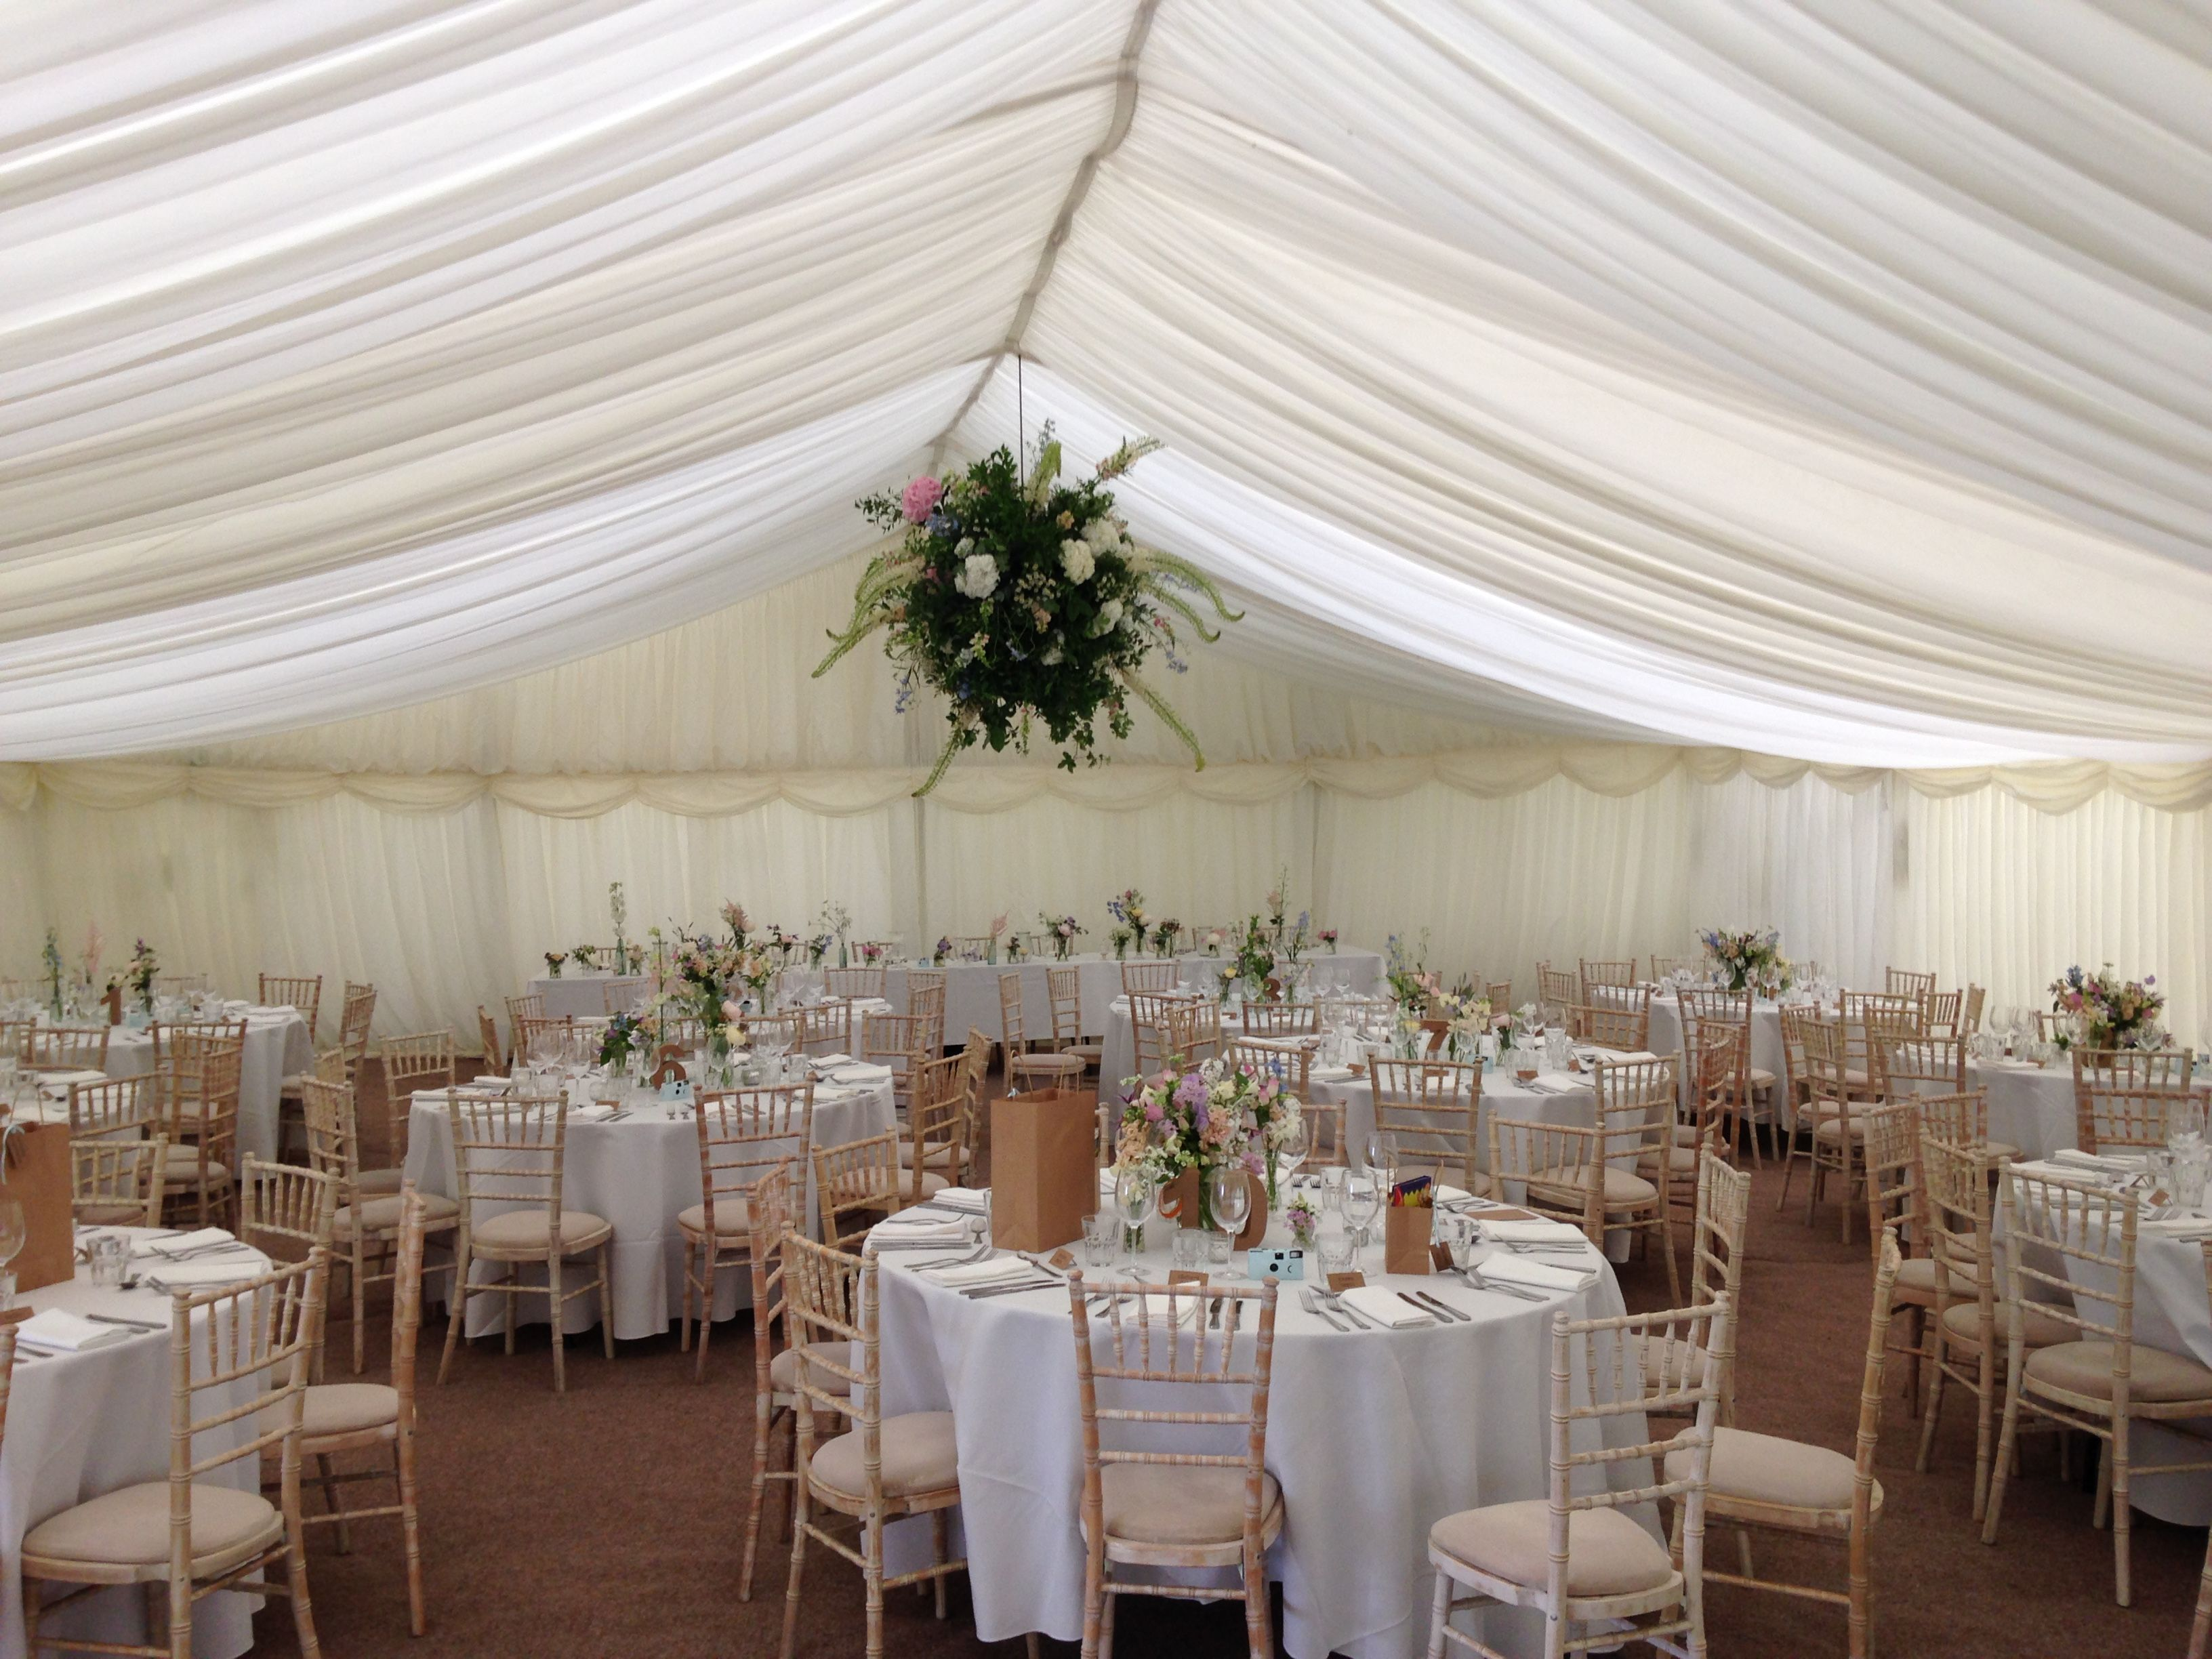 Country style wedding with suspended flower ball in a frame marquee alresford marquees specialises in marquee hire wedding marquees party marquees and corporate marquee hire across hampshire surrey sussex berkshire junglespirit Choice Image